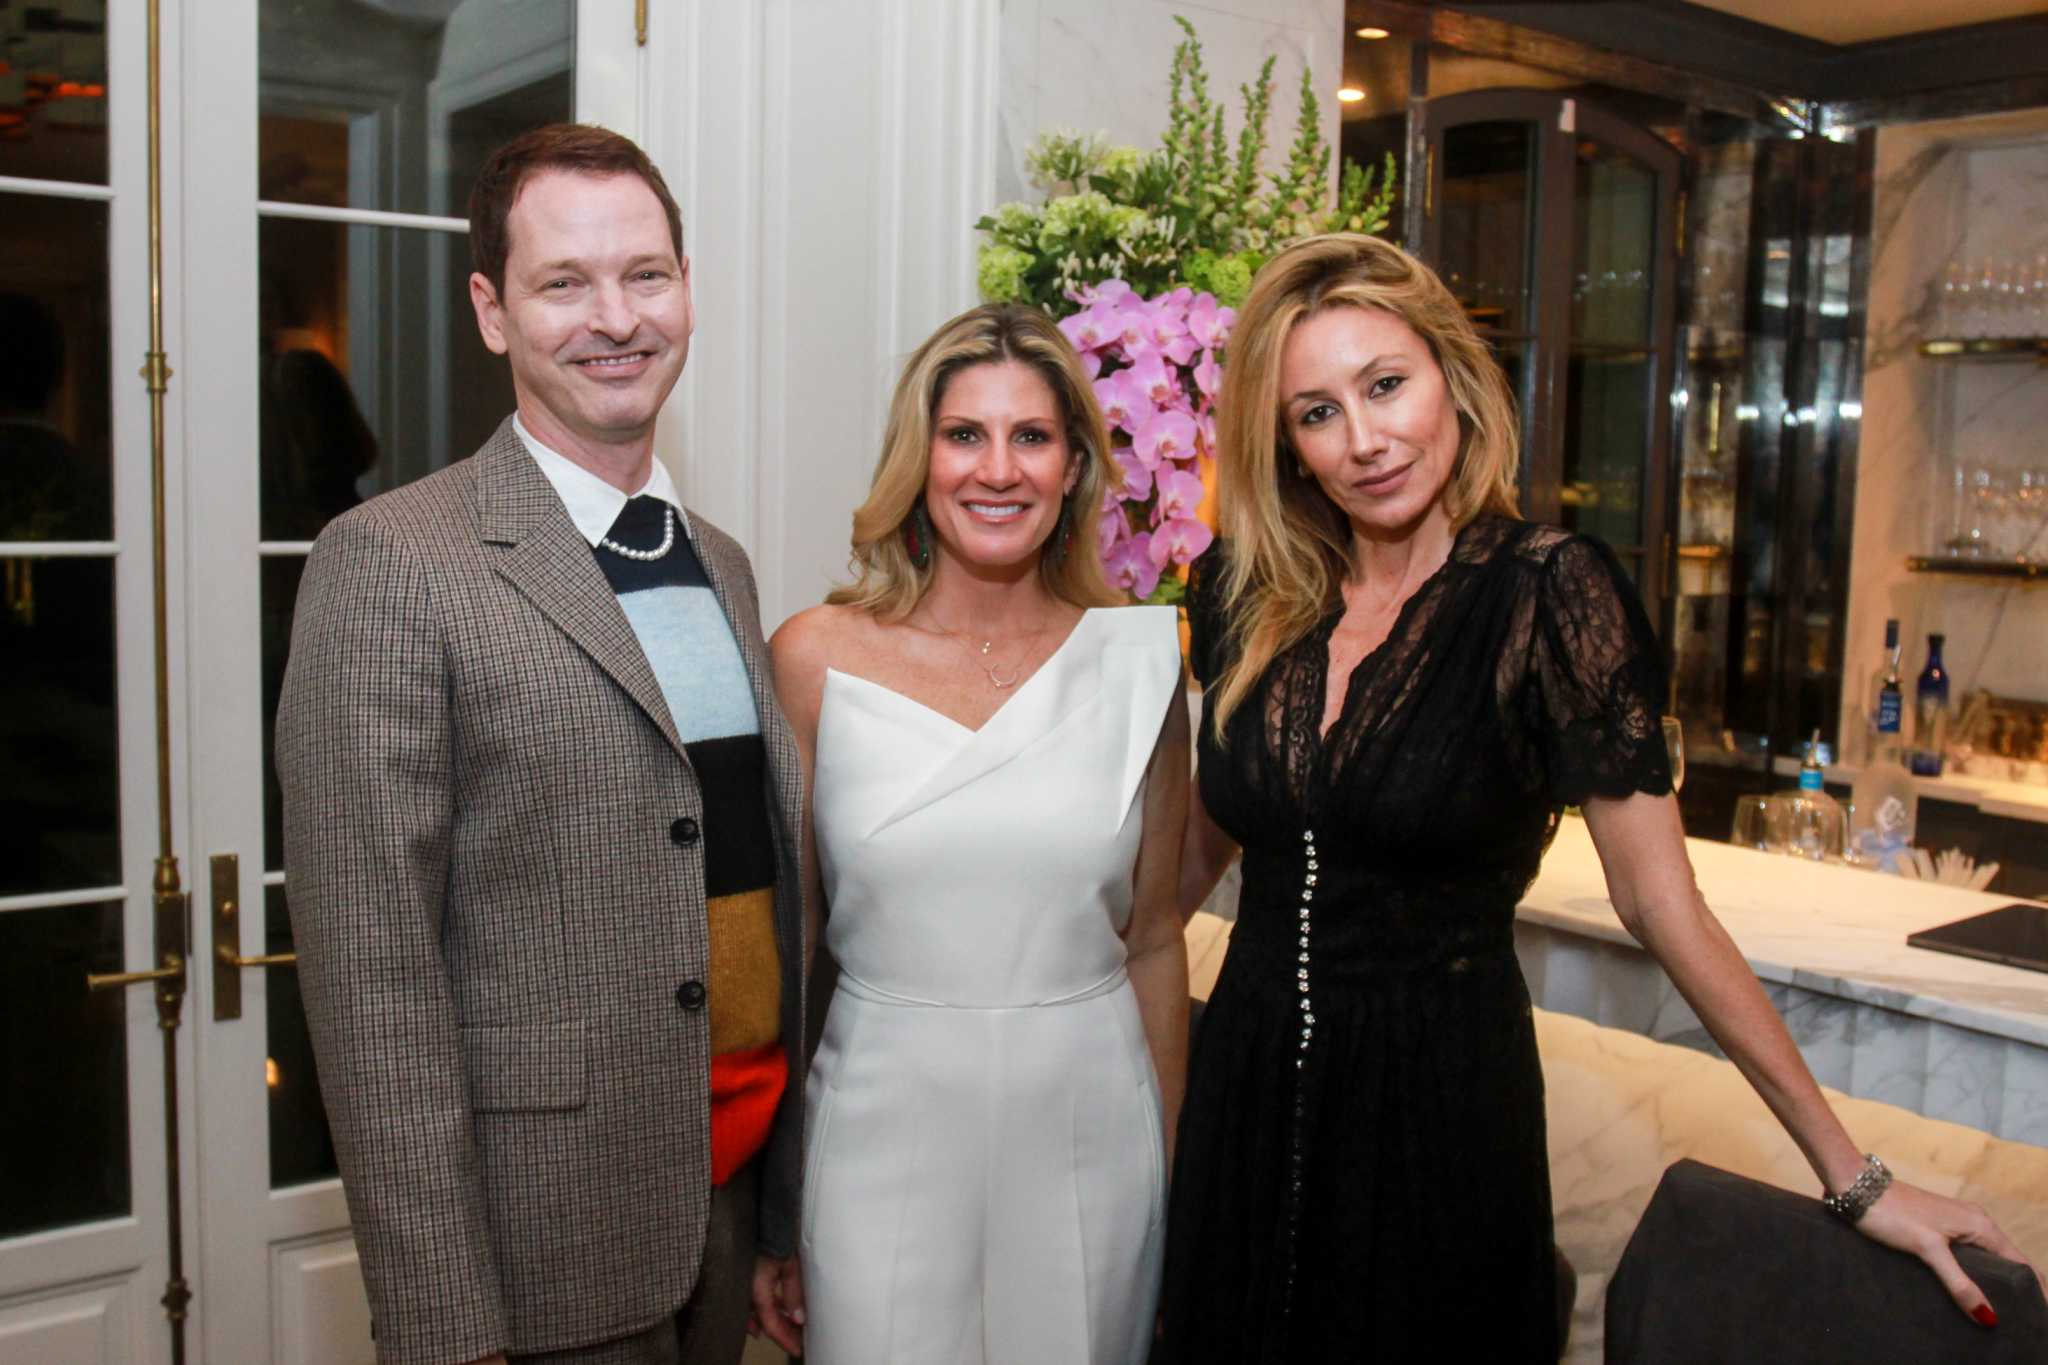 'Best Dressed' Hall of Fame honoree Greggory Burk hosts 'girls night in' with Moda Operandi